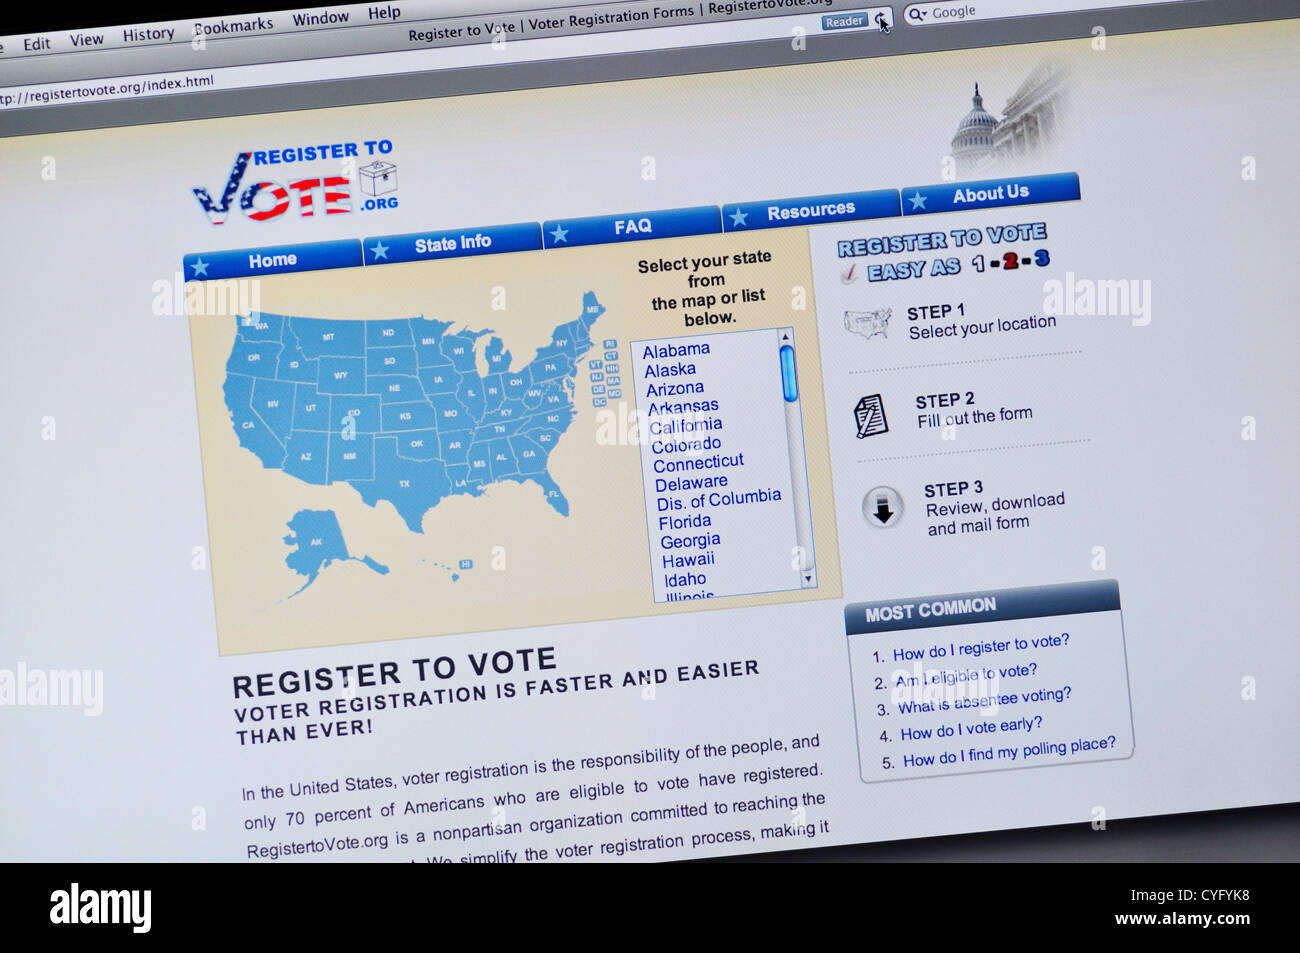 Vote Online Stock Photos & Vote Online Stock Images - Alamy